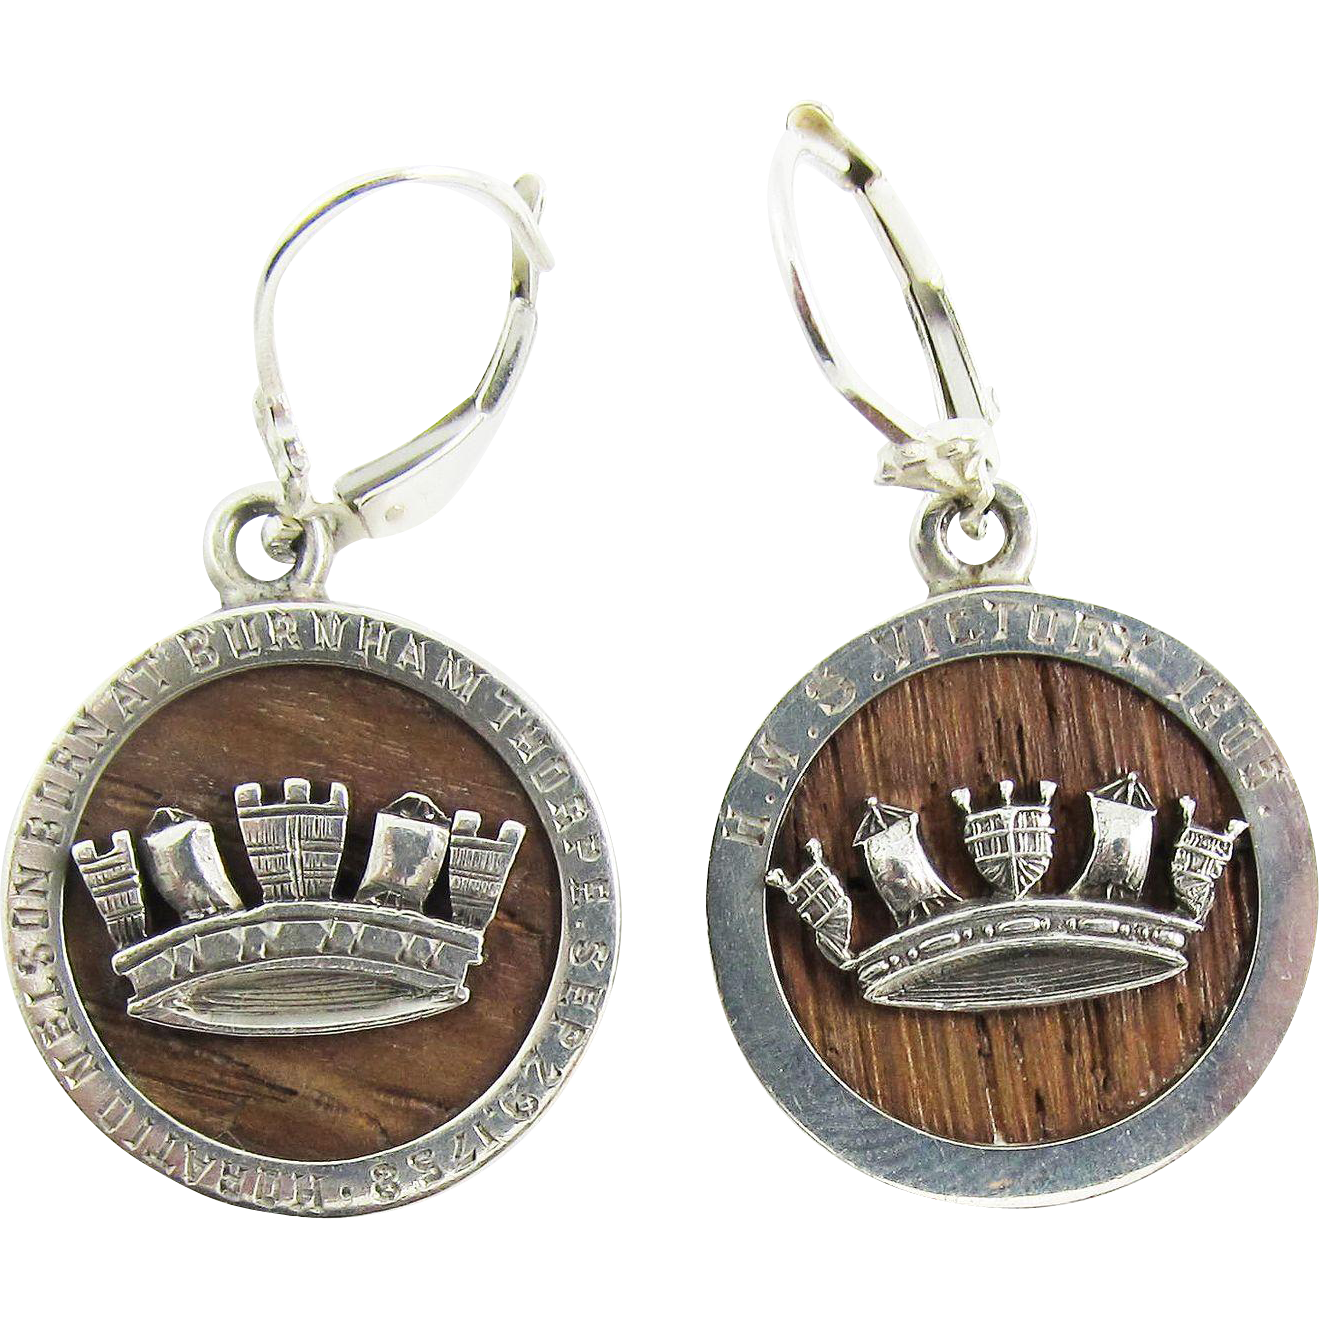 IMPORTANT Pair of Sterling Silver Earrings Set with Timber from the HMS Victory, Lord Nelson/Naval Interest, c.1765/1905!